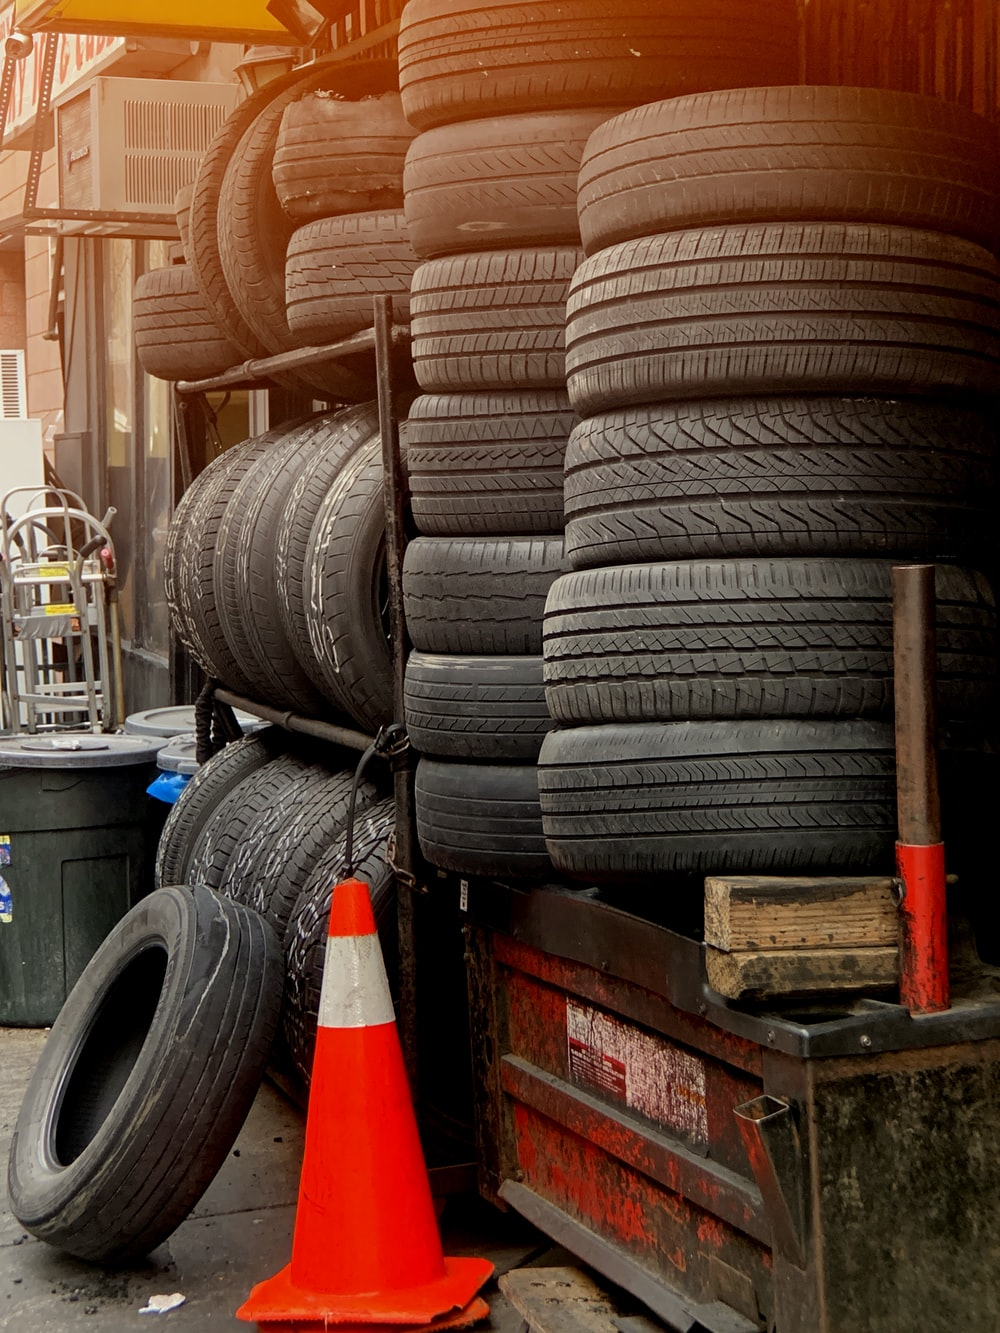 orange traffic cone near pile of vehicle tires